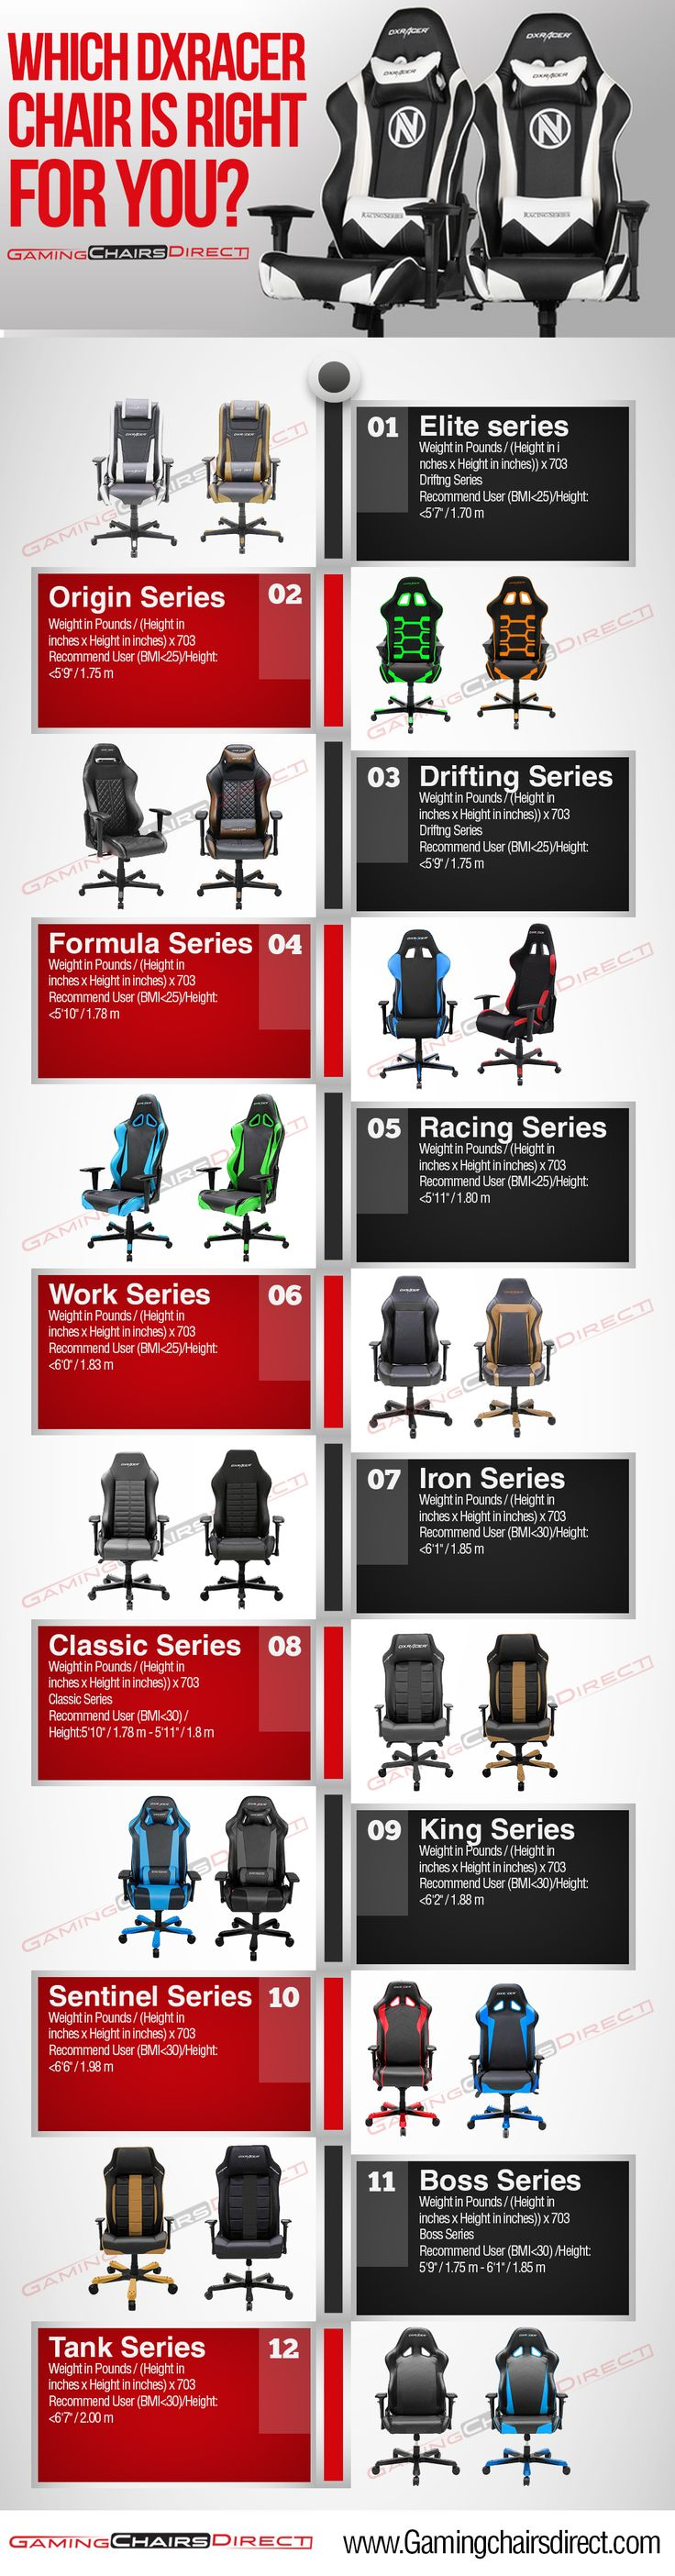 The 25 best Cadeira dxracer ideas on Pinterest